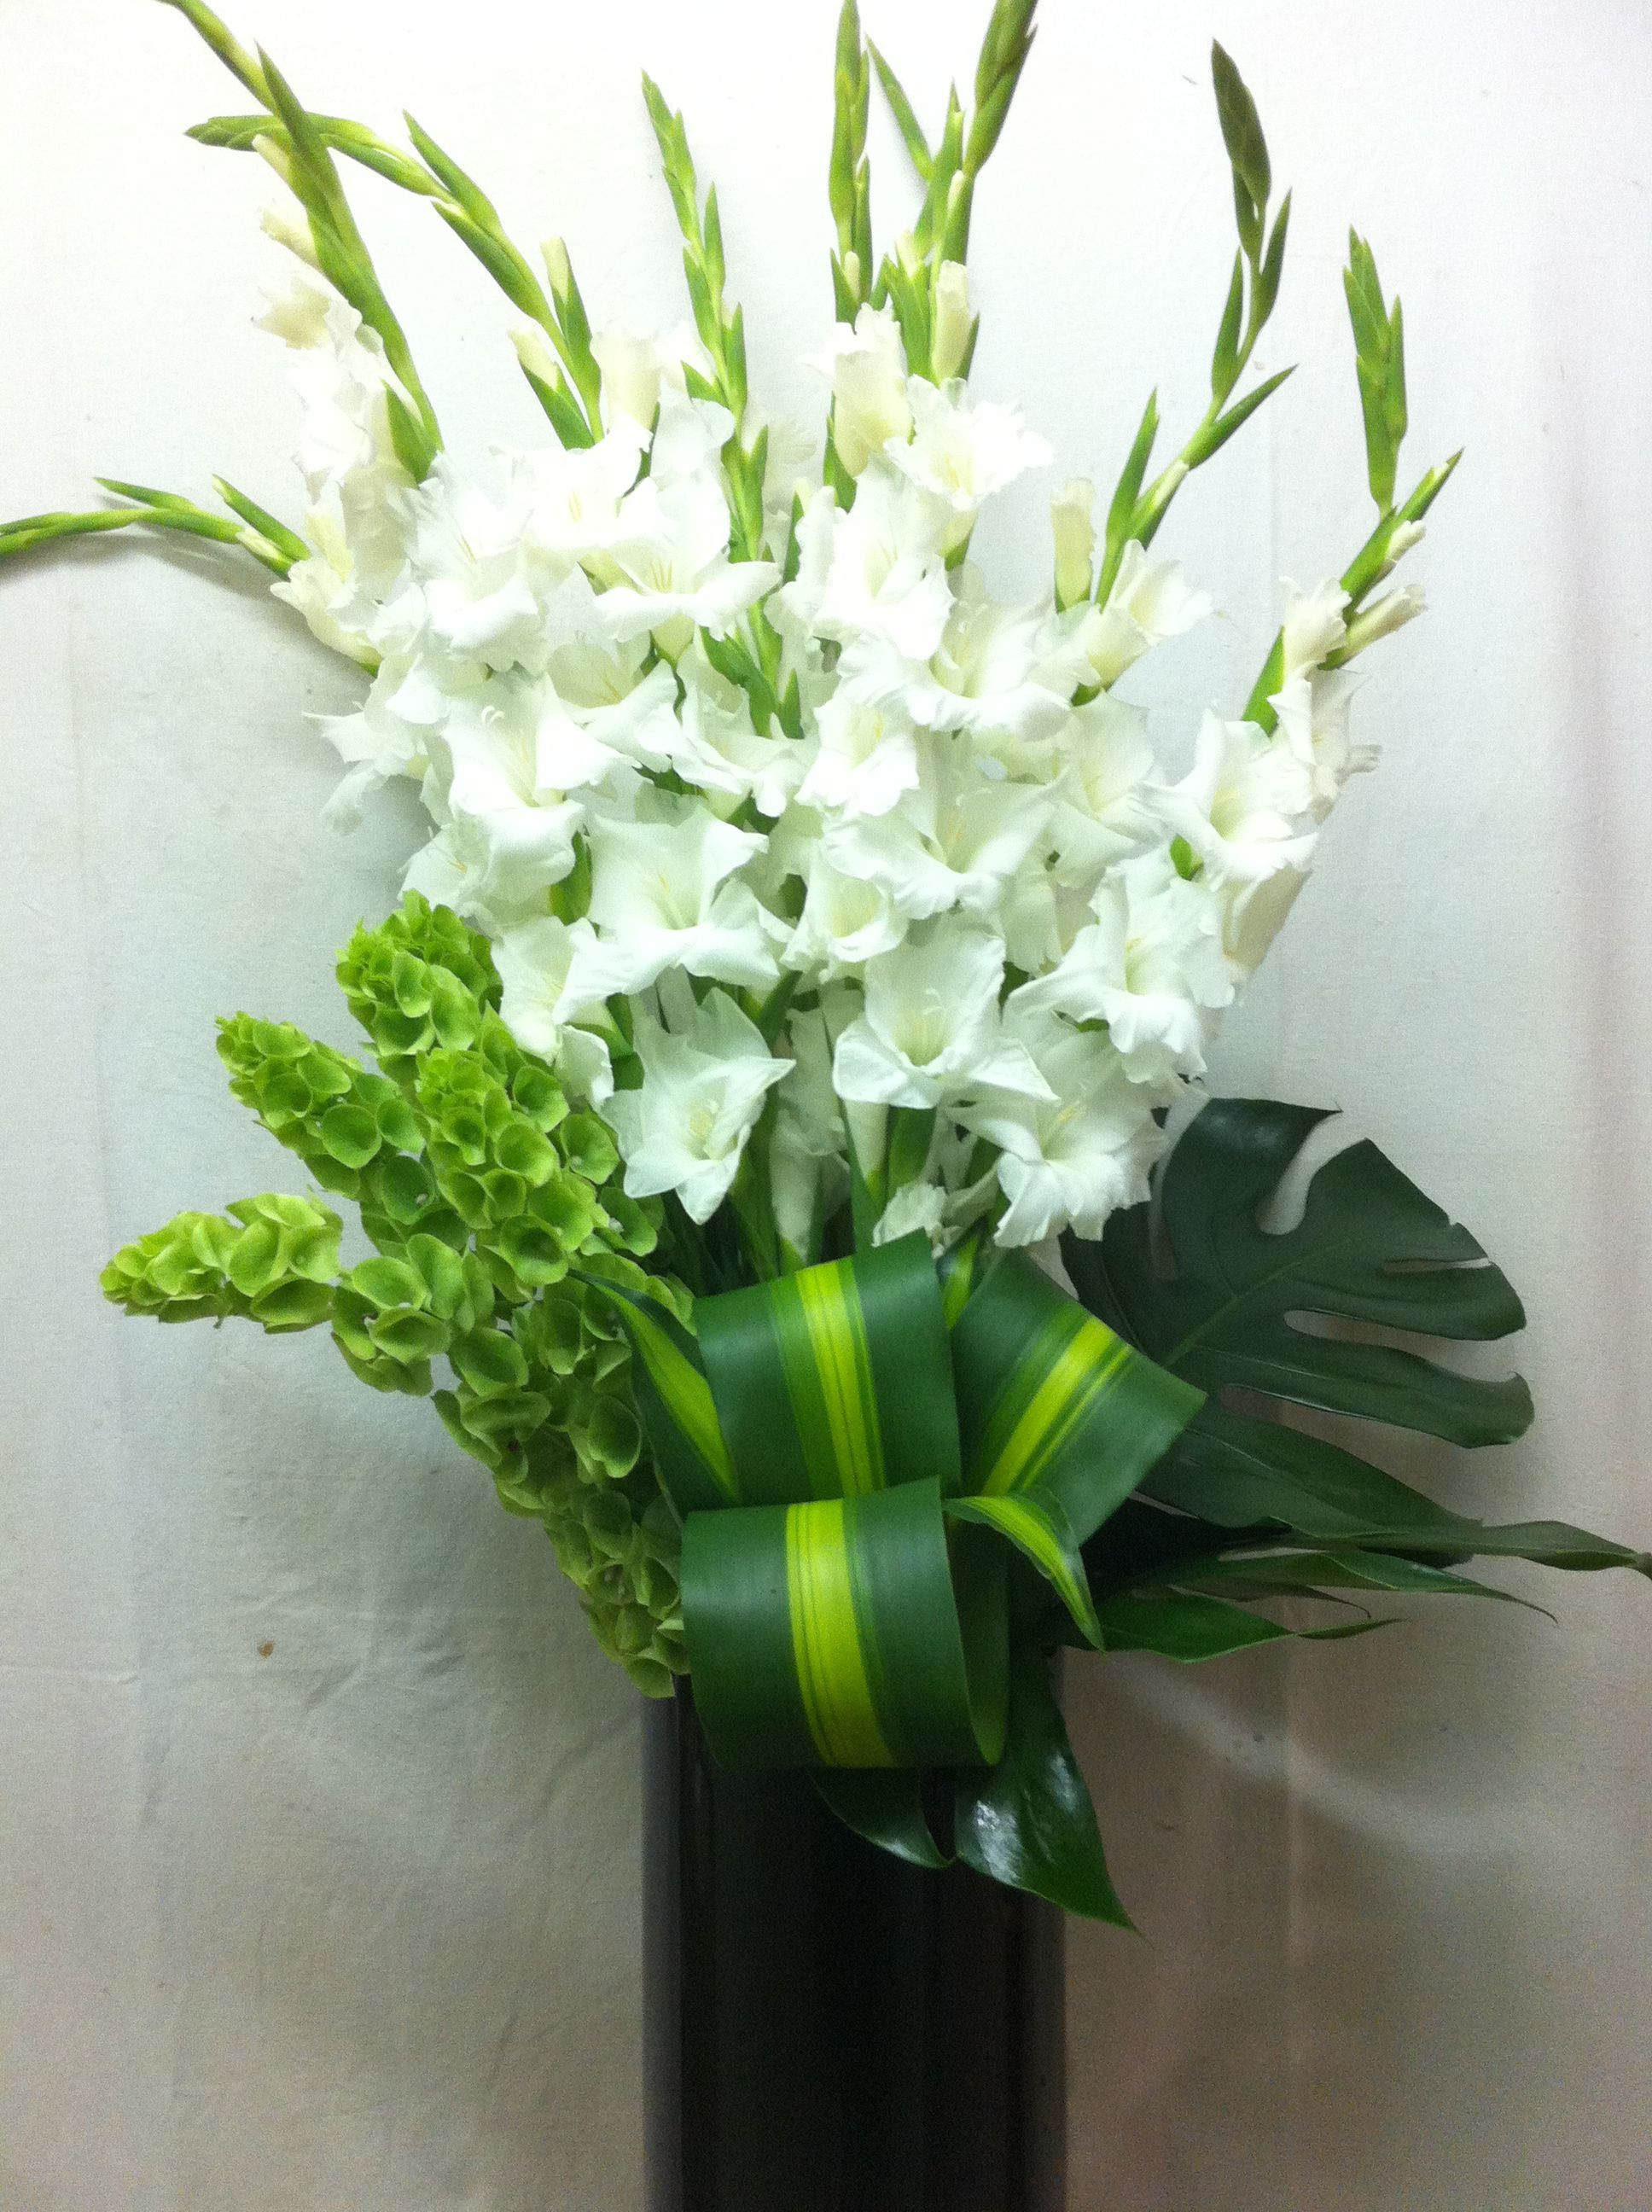 This Beautiful Arrangement By Belflora Combines White Gladioli, Malacacca Balm,